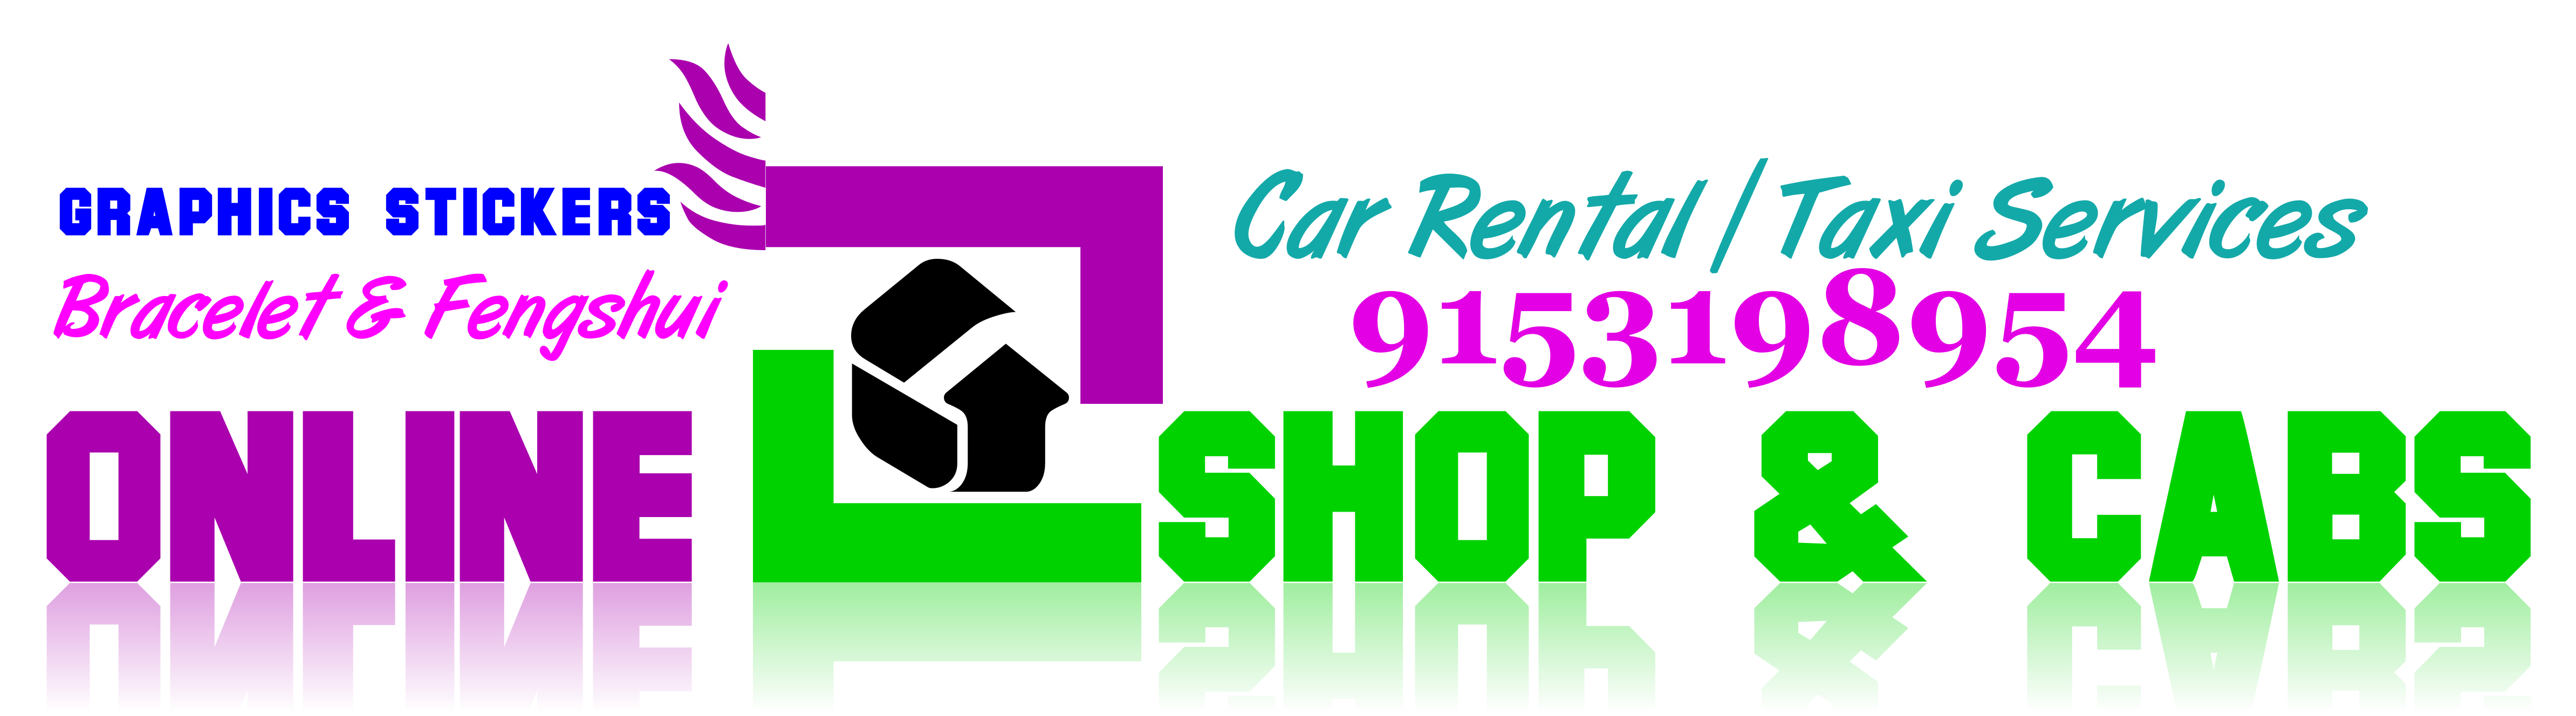 Car Rental Taxi Services logo